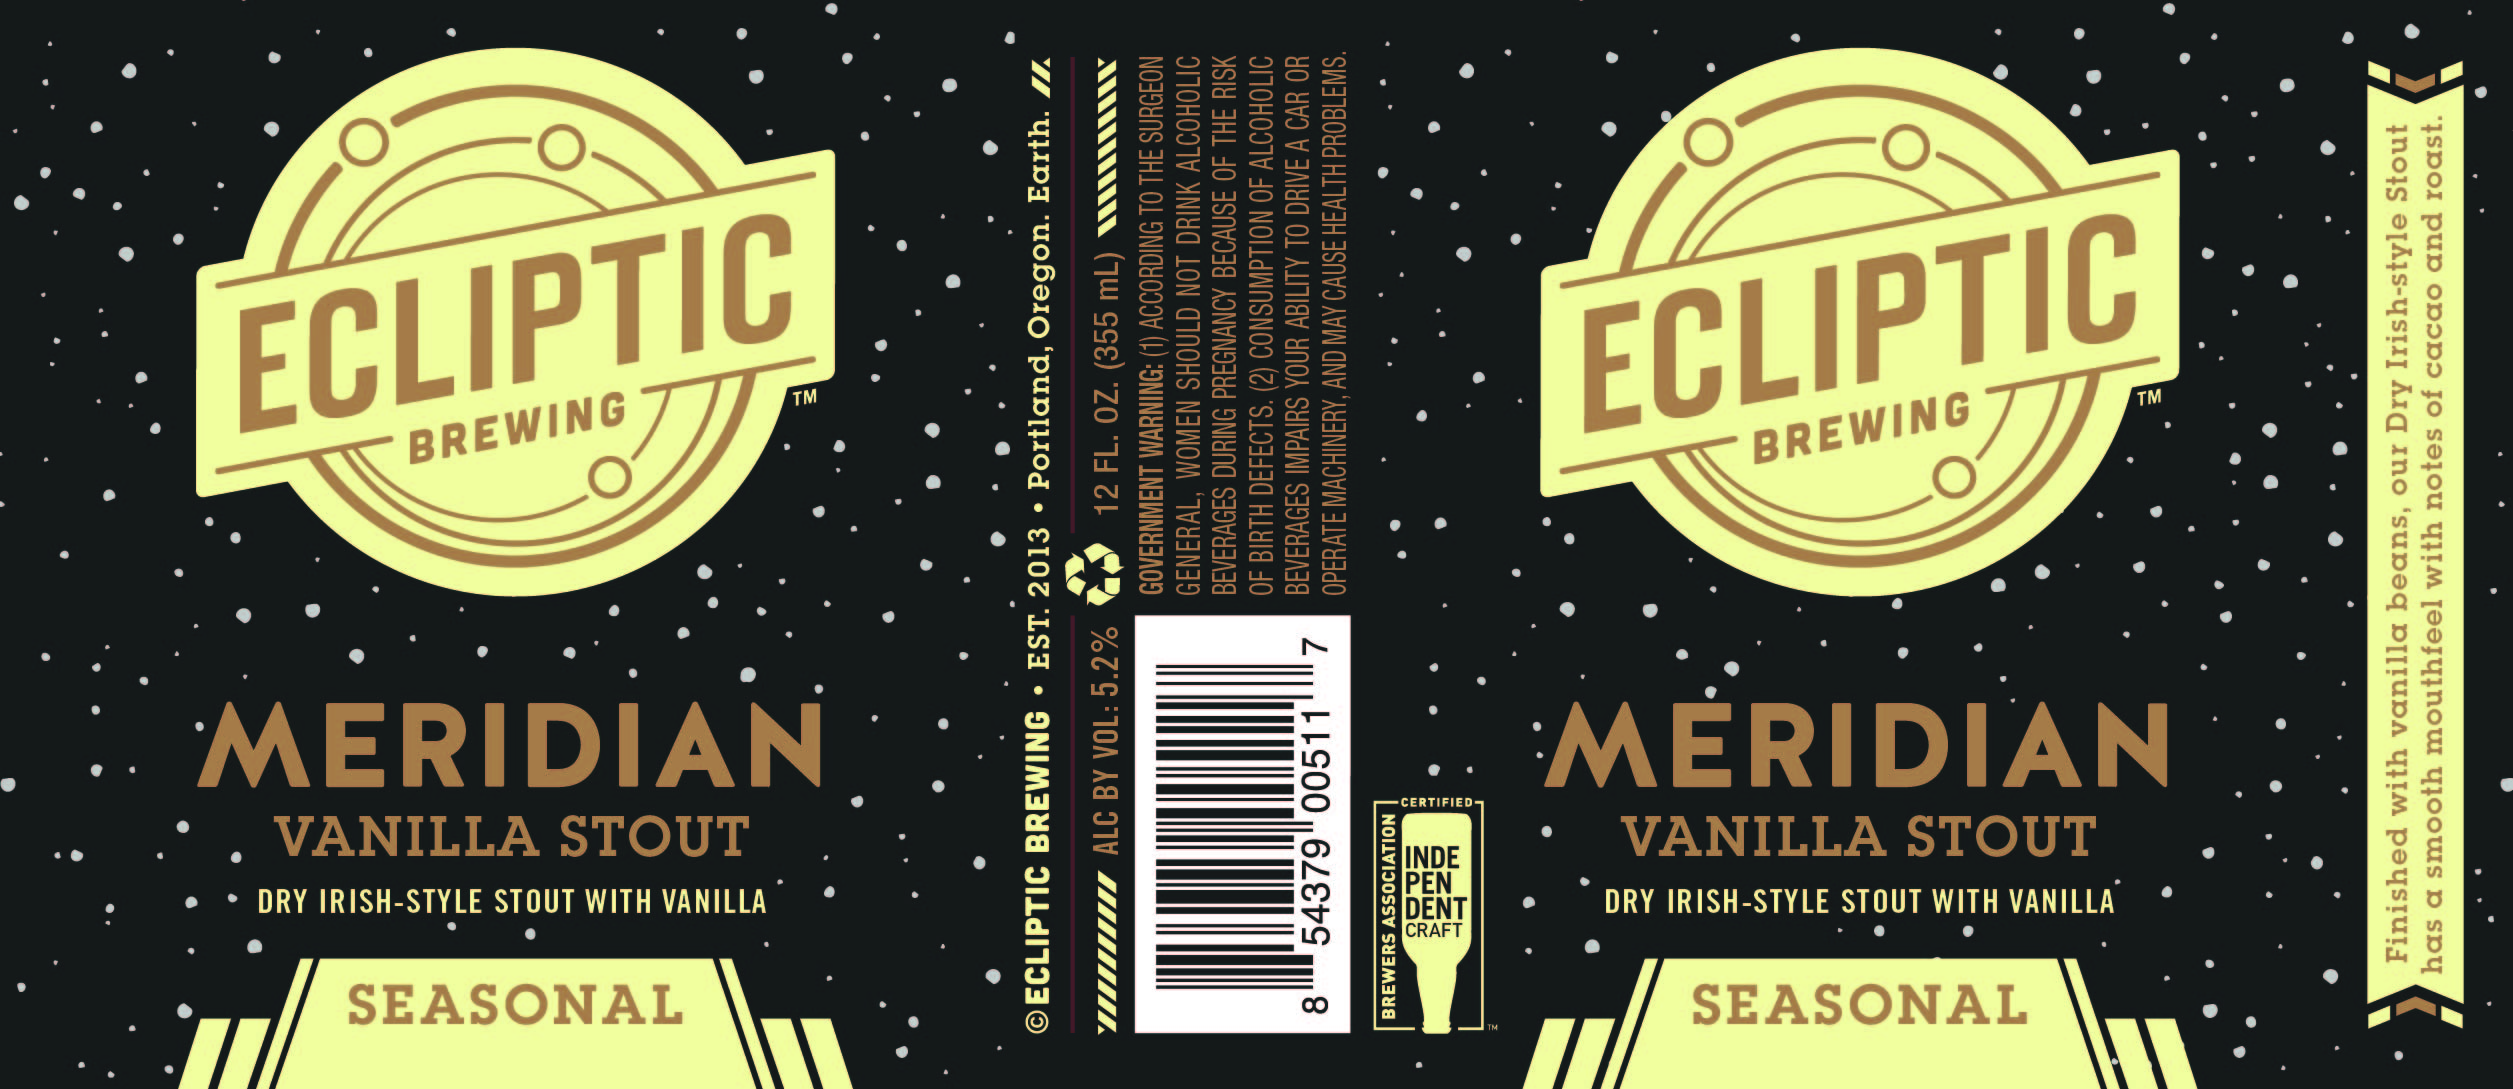 Ecliptic Brewing Meridian Vanilla Stout Label